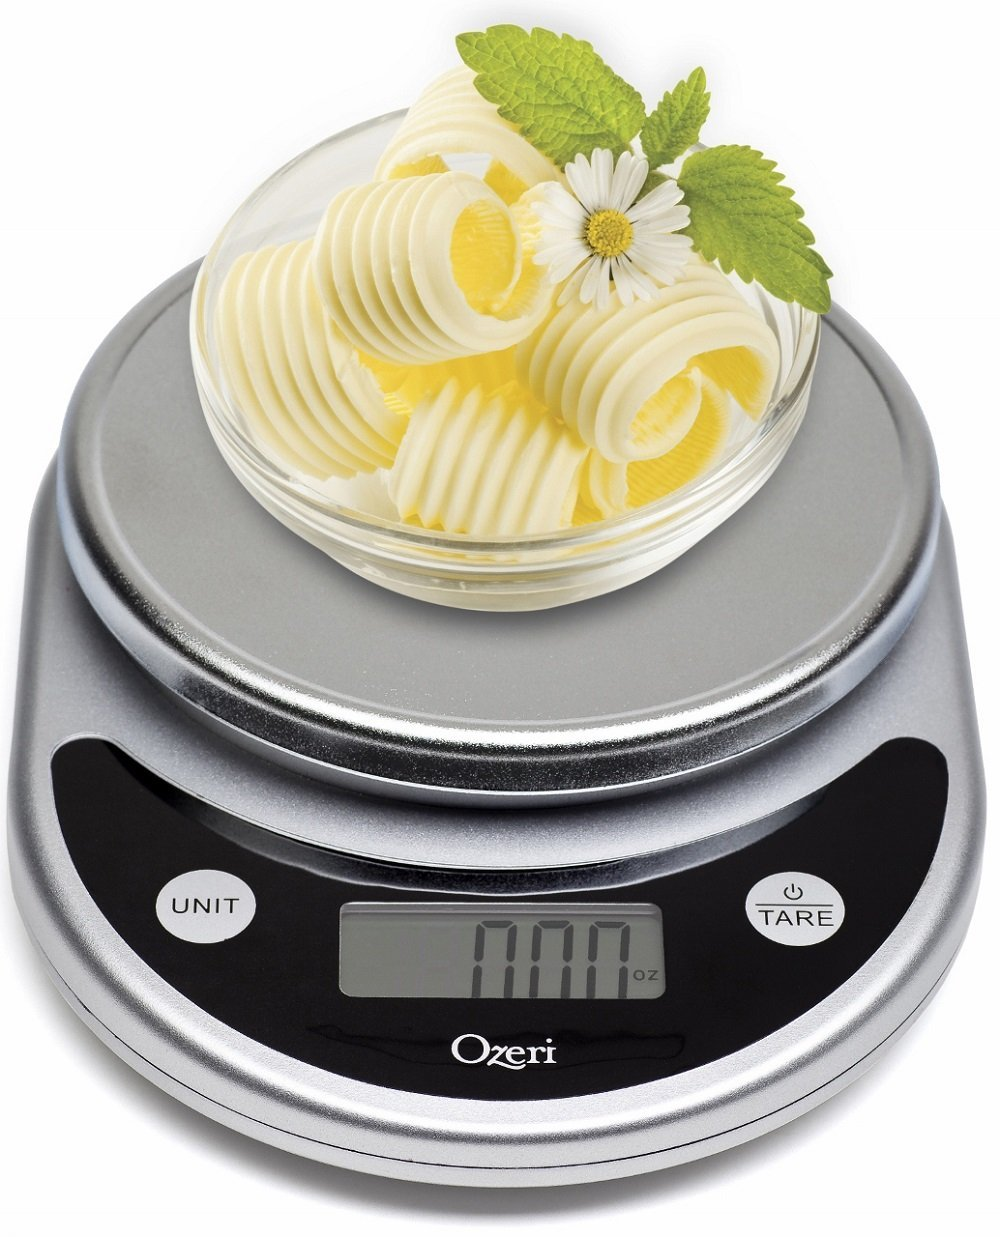 digital multifunction kitchen and food scale3